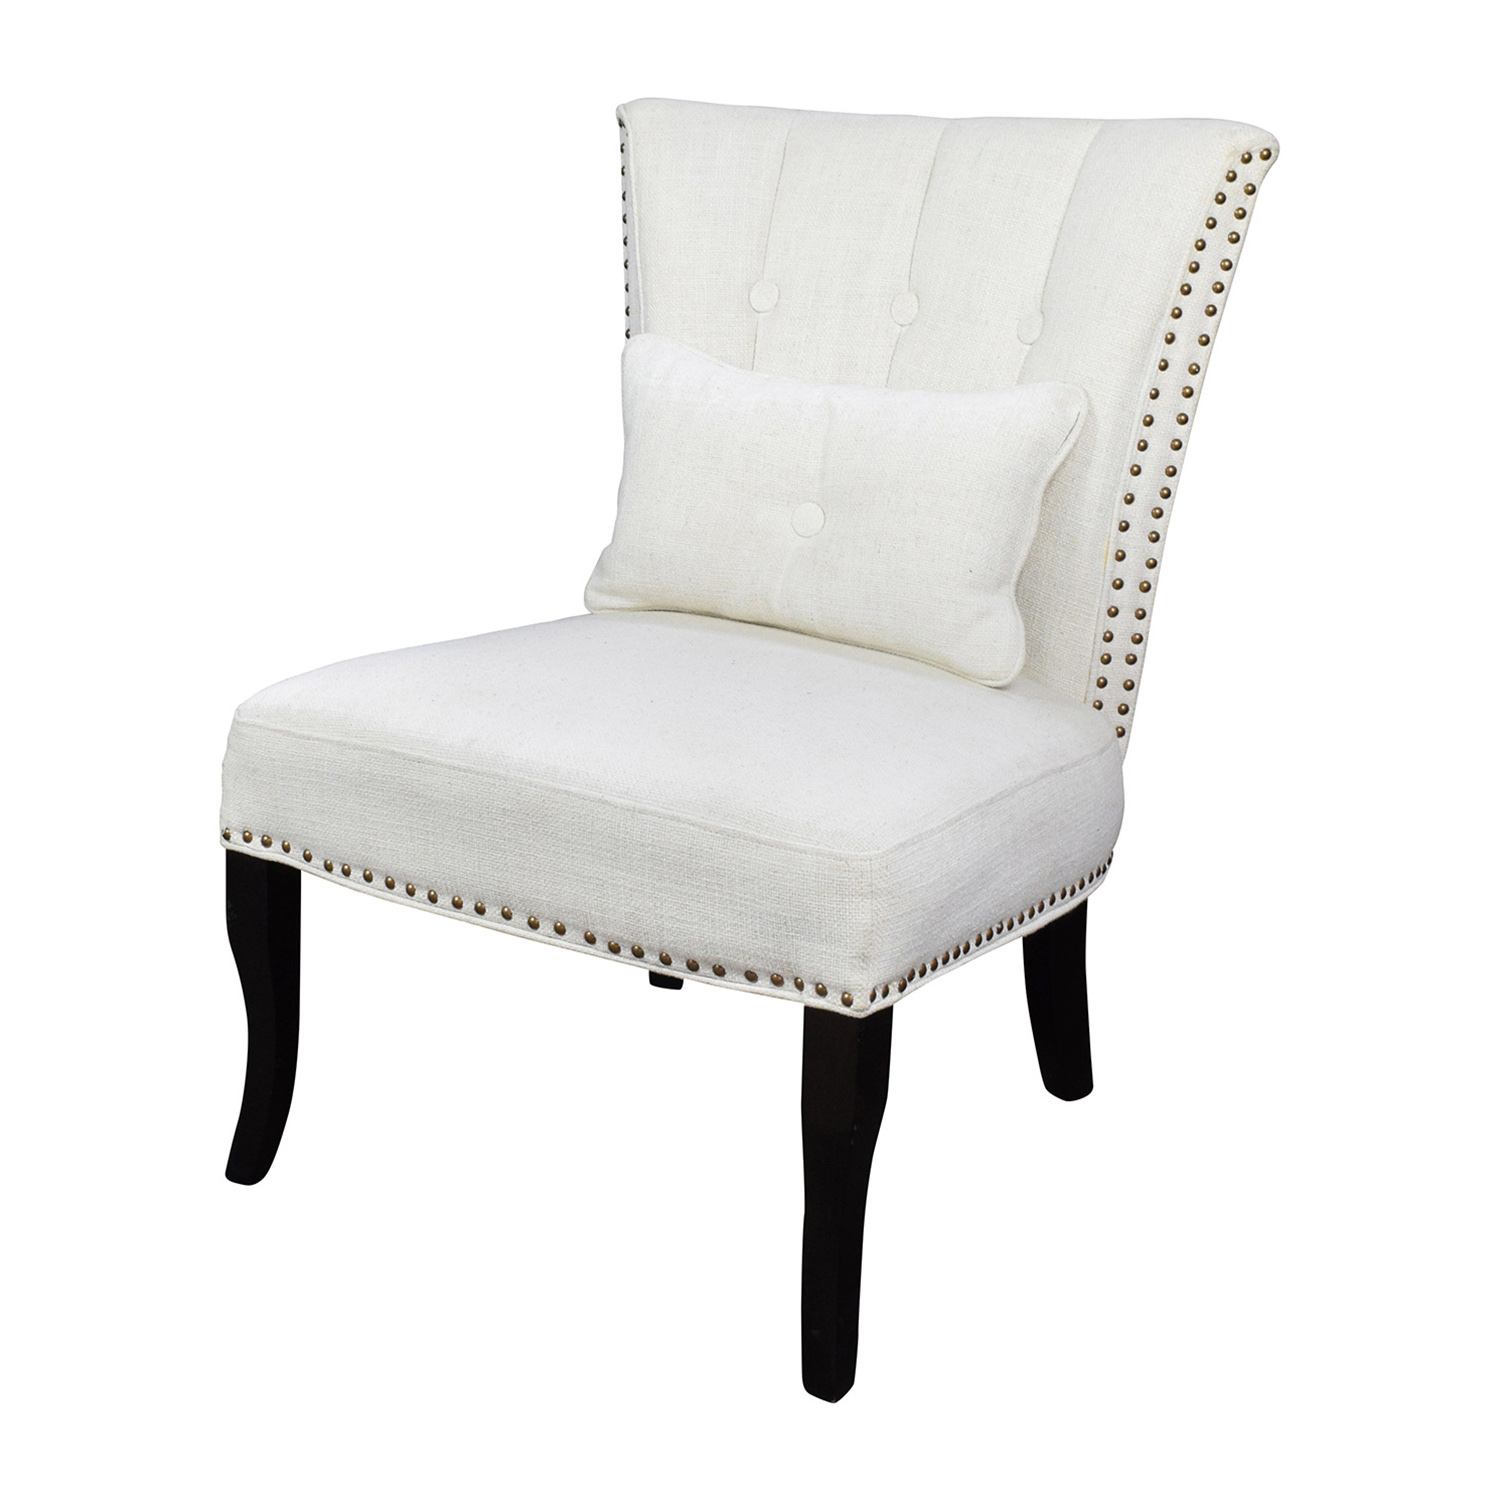 White Arm Chairs 66 Off Unkown White Tufted Accent Chair Chairs